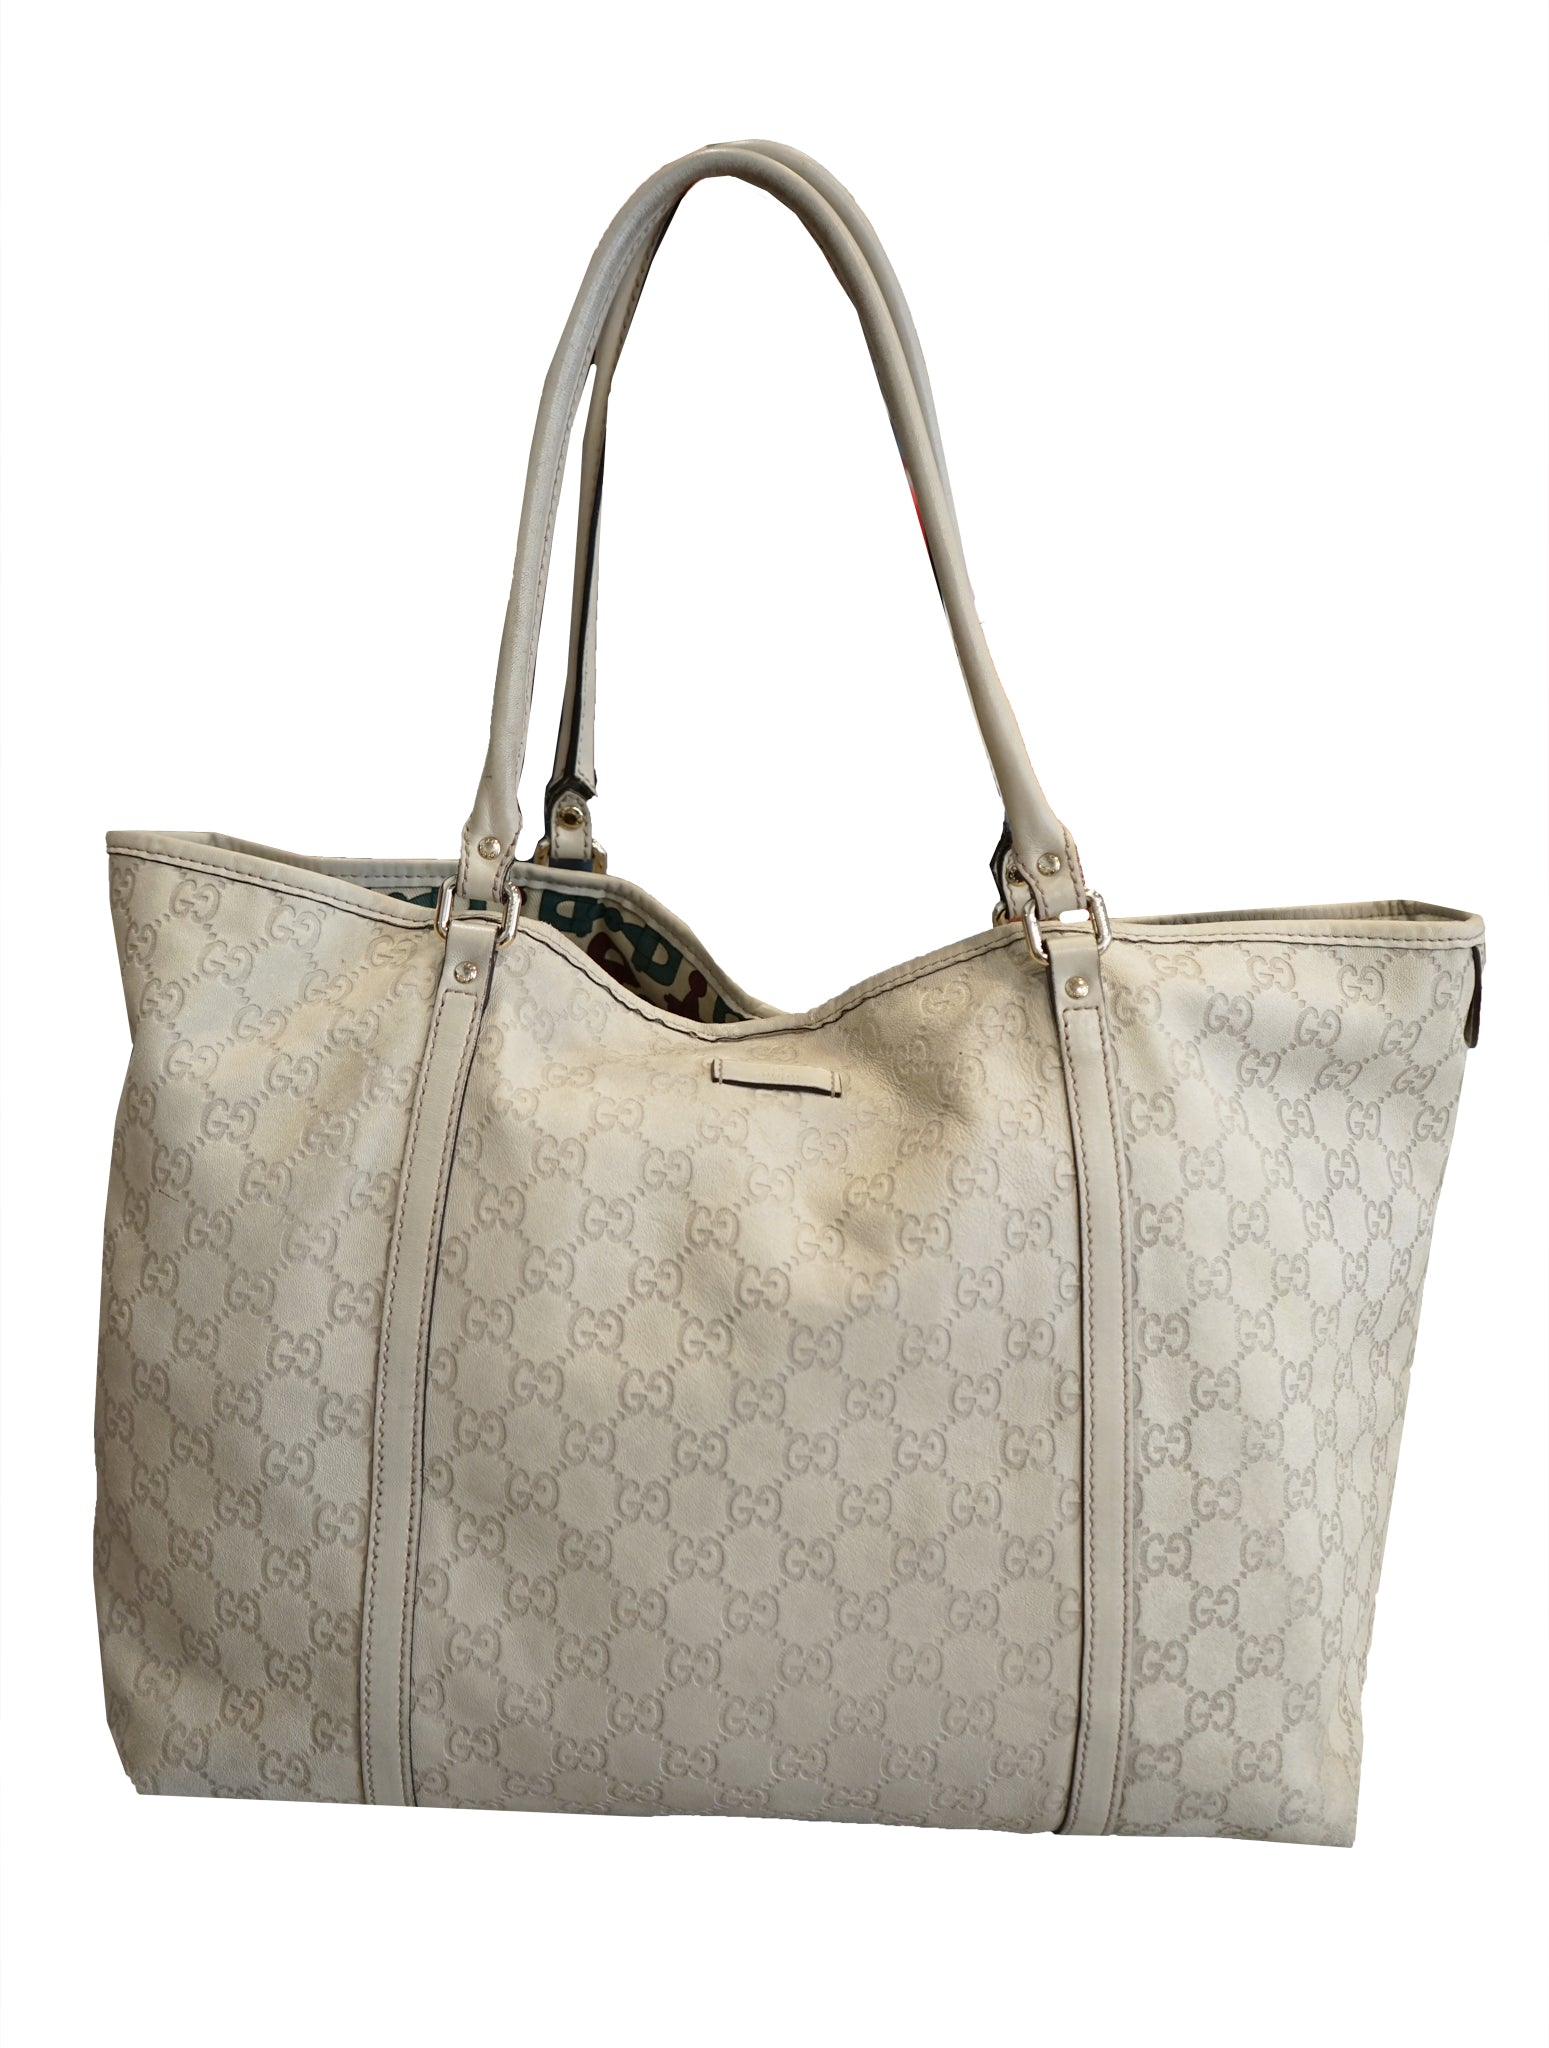 GUCCISSIMA LEATHER TOTE BAG